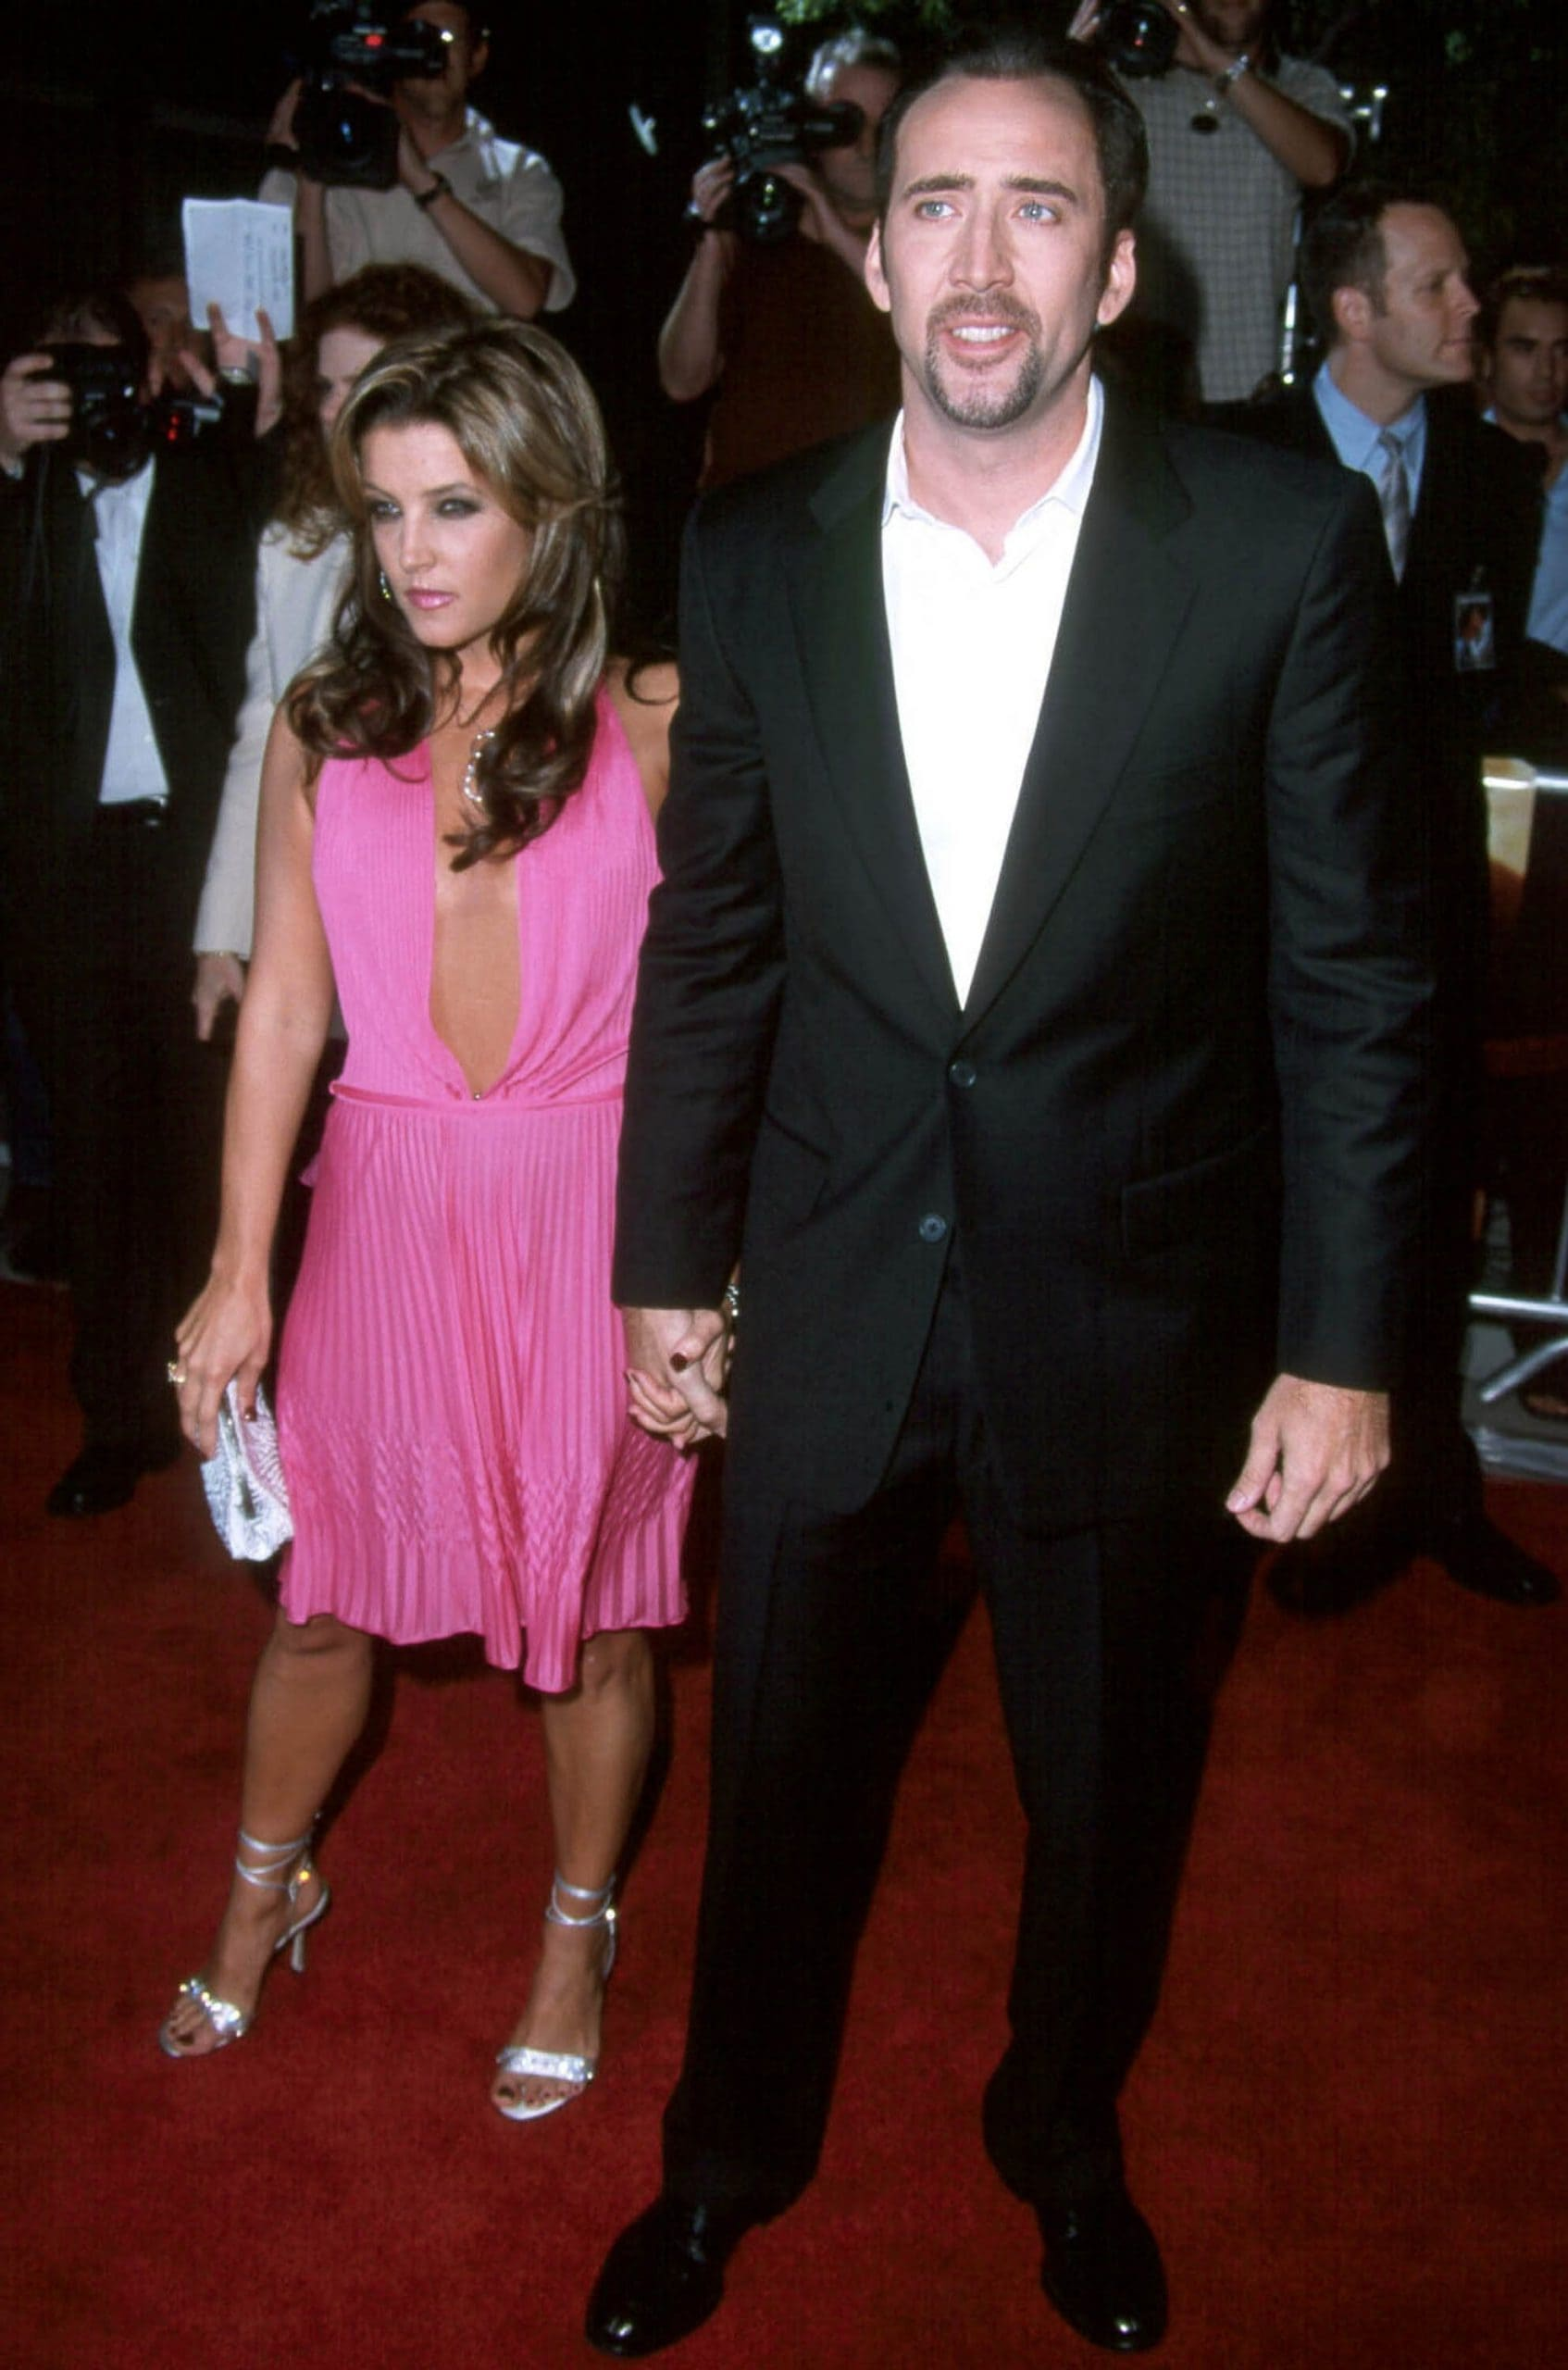 Nicolas Cage and Lisa Marie Presley were married for a total of about three and a half months in 2002